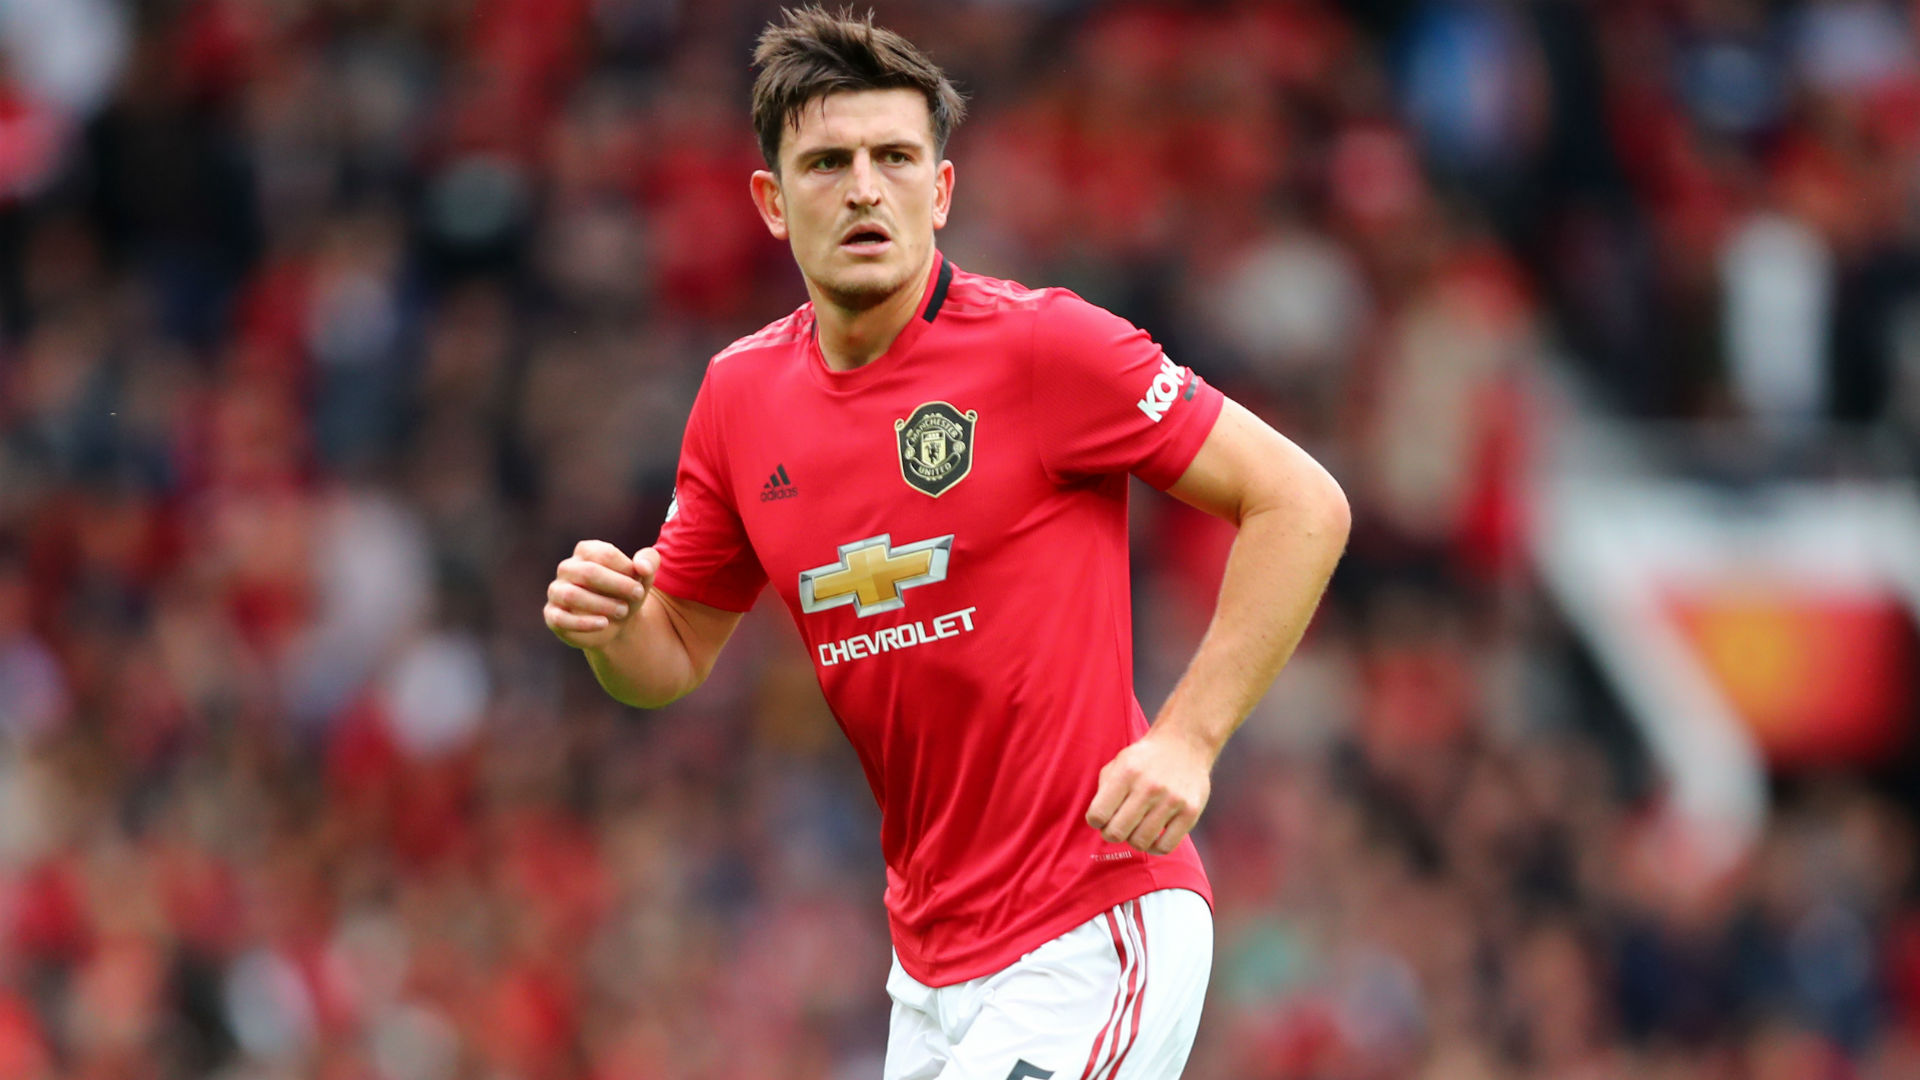 Harry Maguire has trained well for Manchester United but Ole Gunnar Solskjaer is aware of this being a difficult time for his captain.